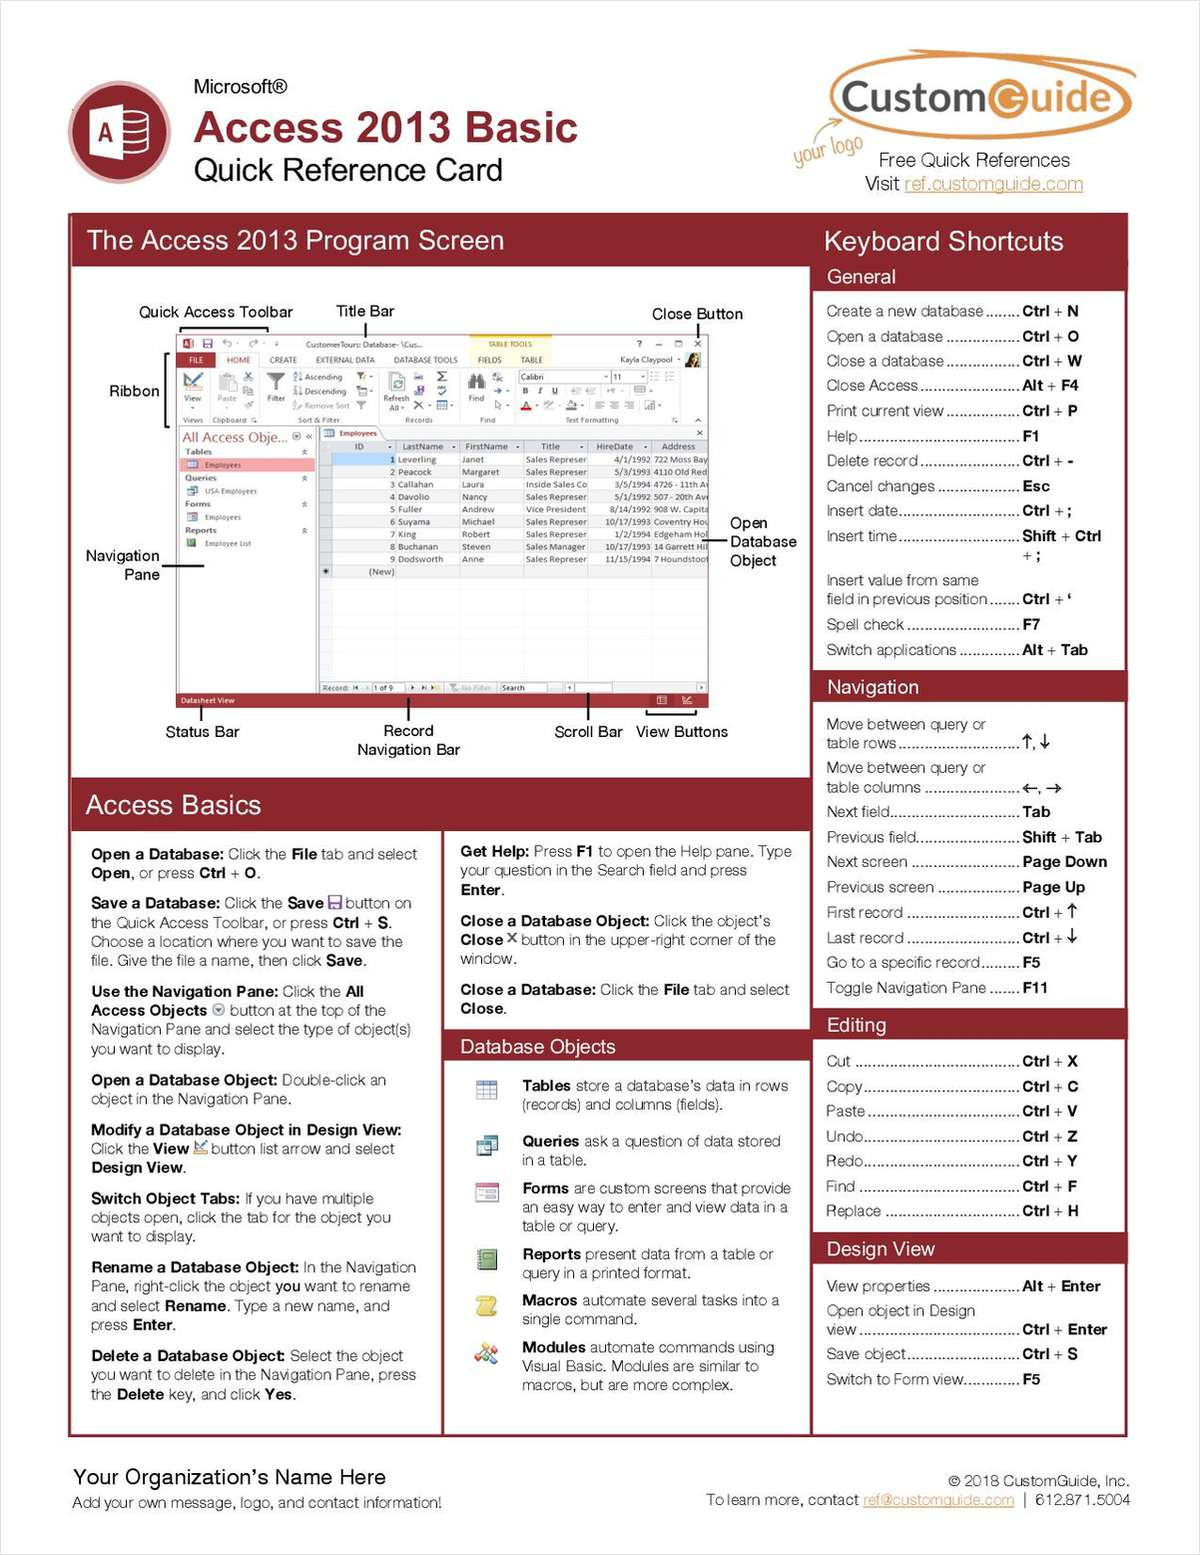 Microsoft Access 2013 Basic - Free Quick Reference Card